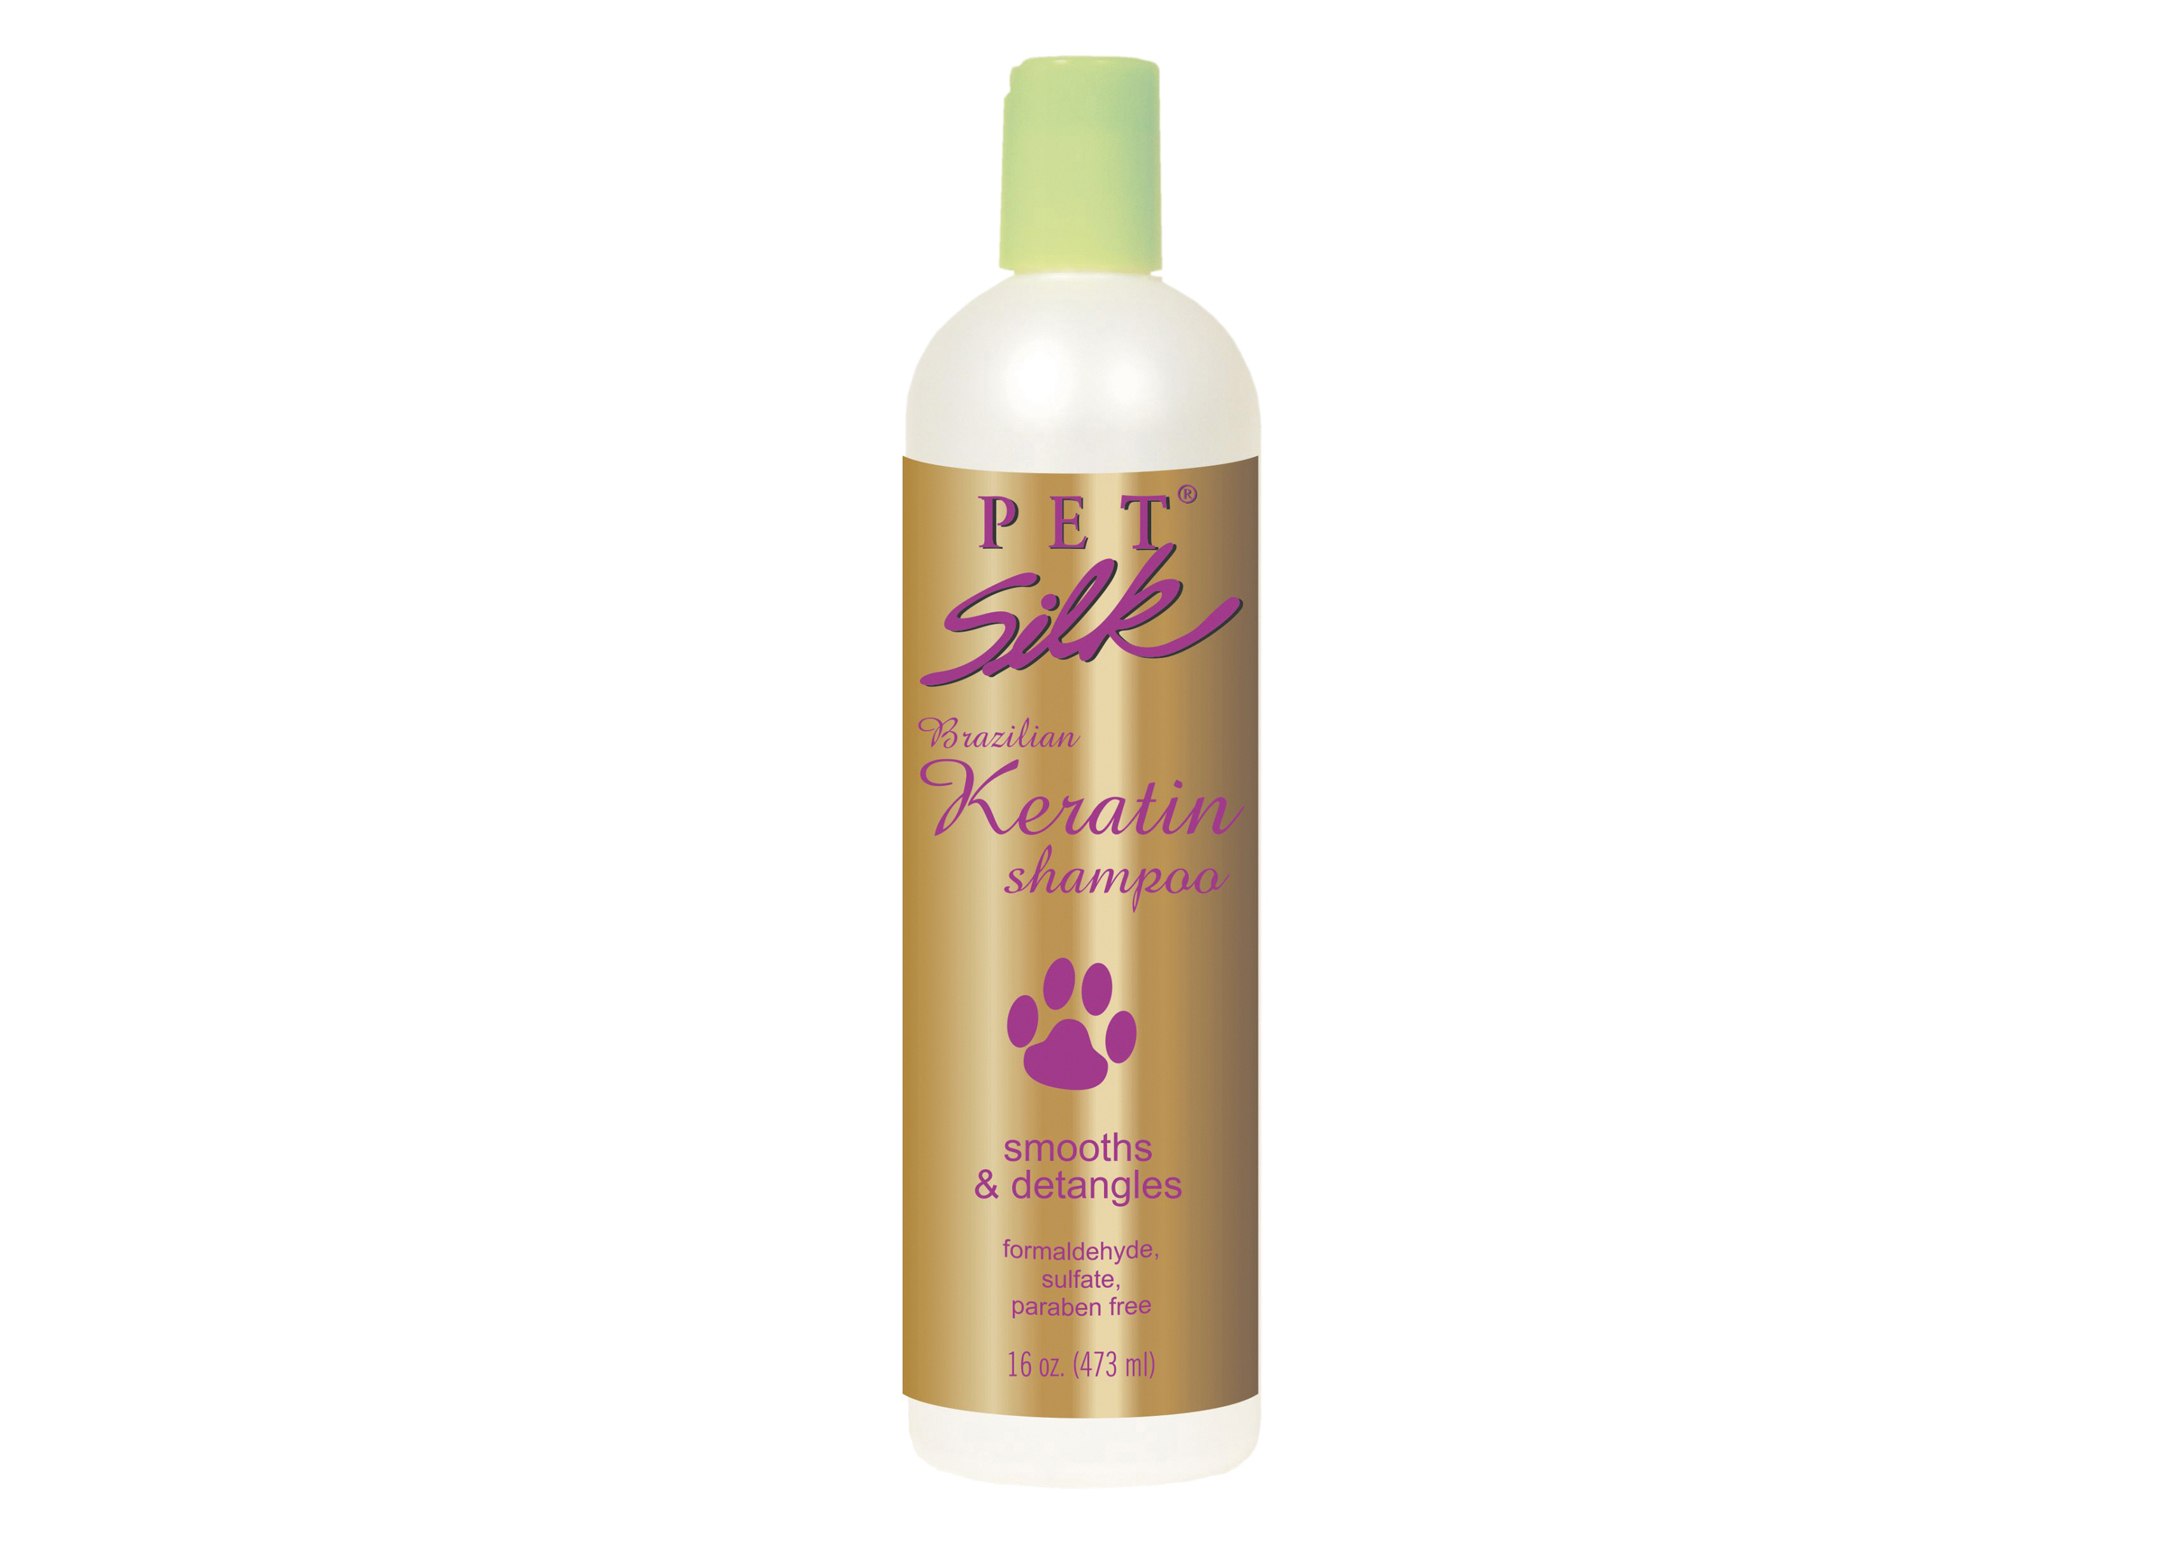 Pet Silk Brazilian Keratin 473 ml Shampoo